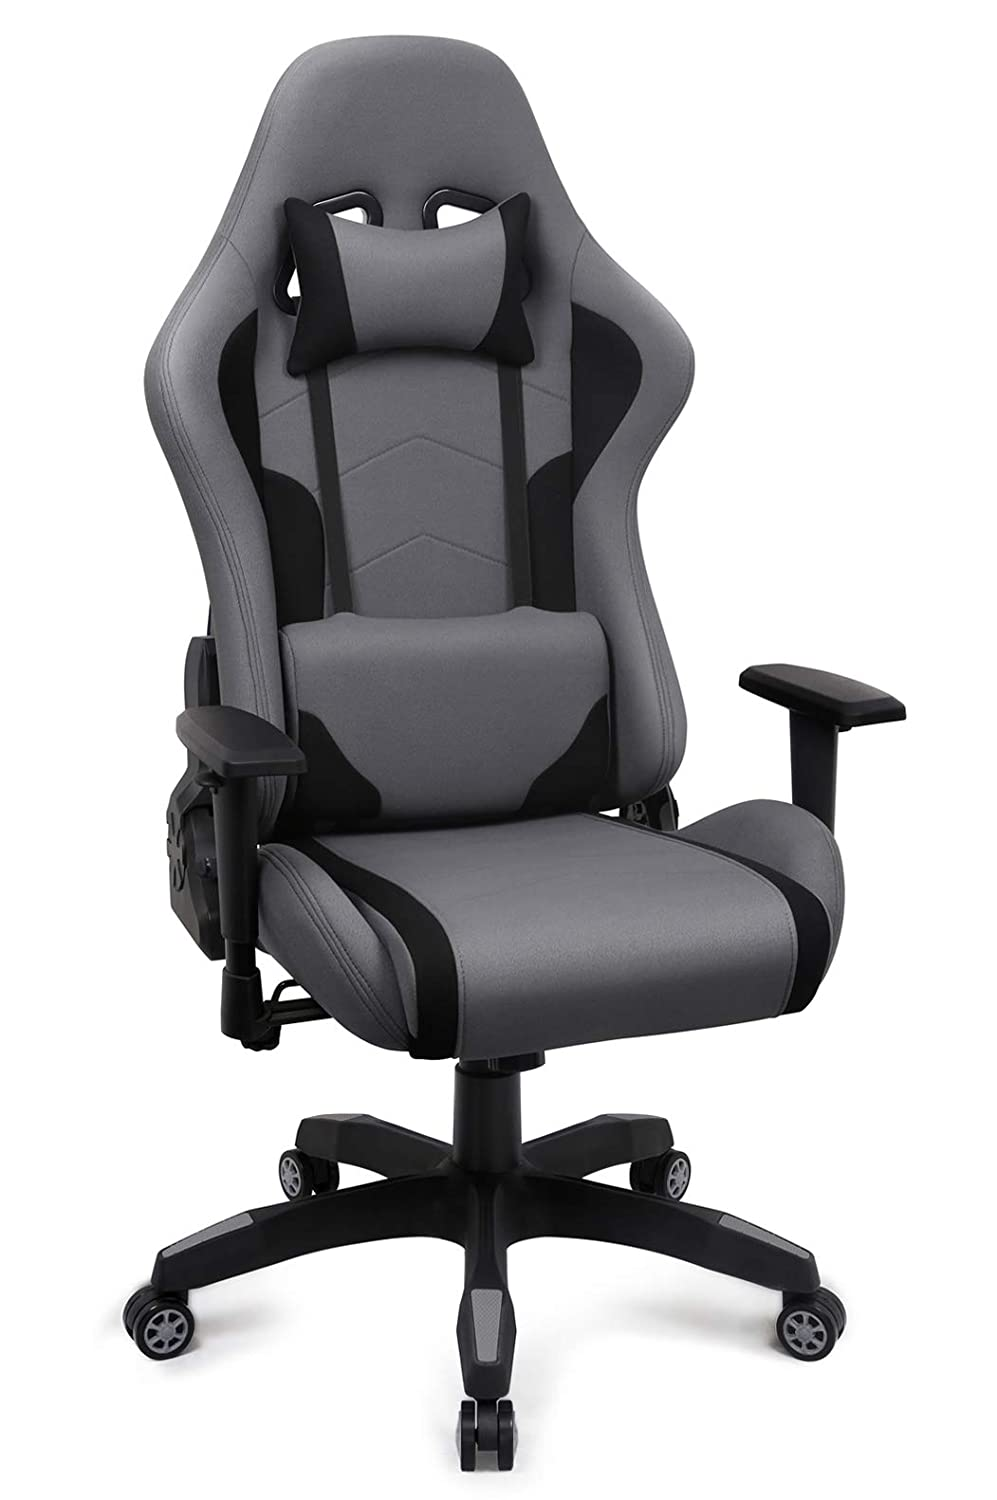 Astounding Fabric Gaming Chair Breathable Racing Office Chair For Bedroom Ergonomic Swivel High Back Recliner Computer Desk Chair Upgraded Grey Machost Co Dining Chair Design Ideas Machostcouk